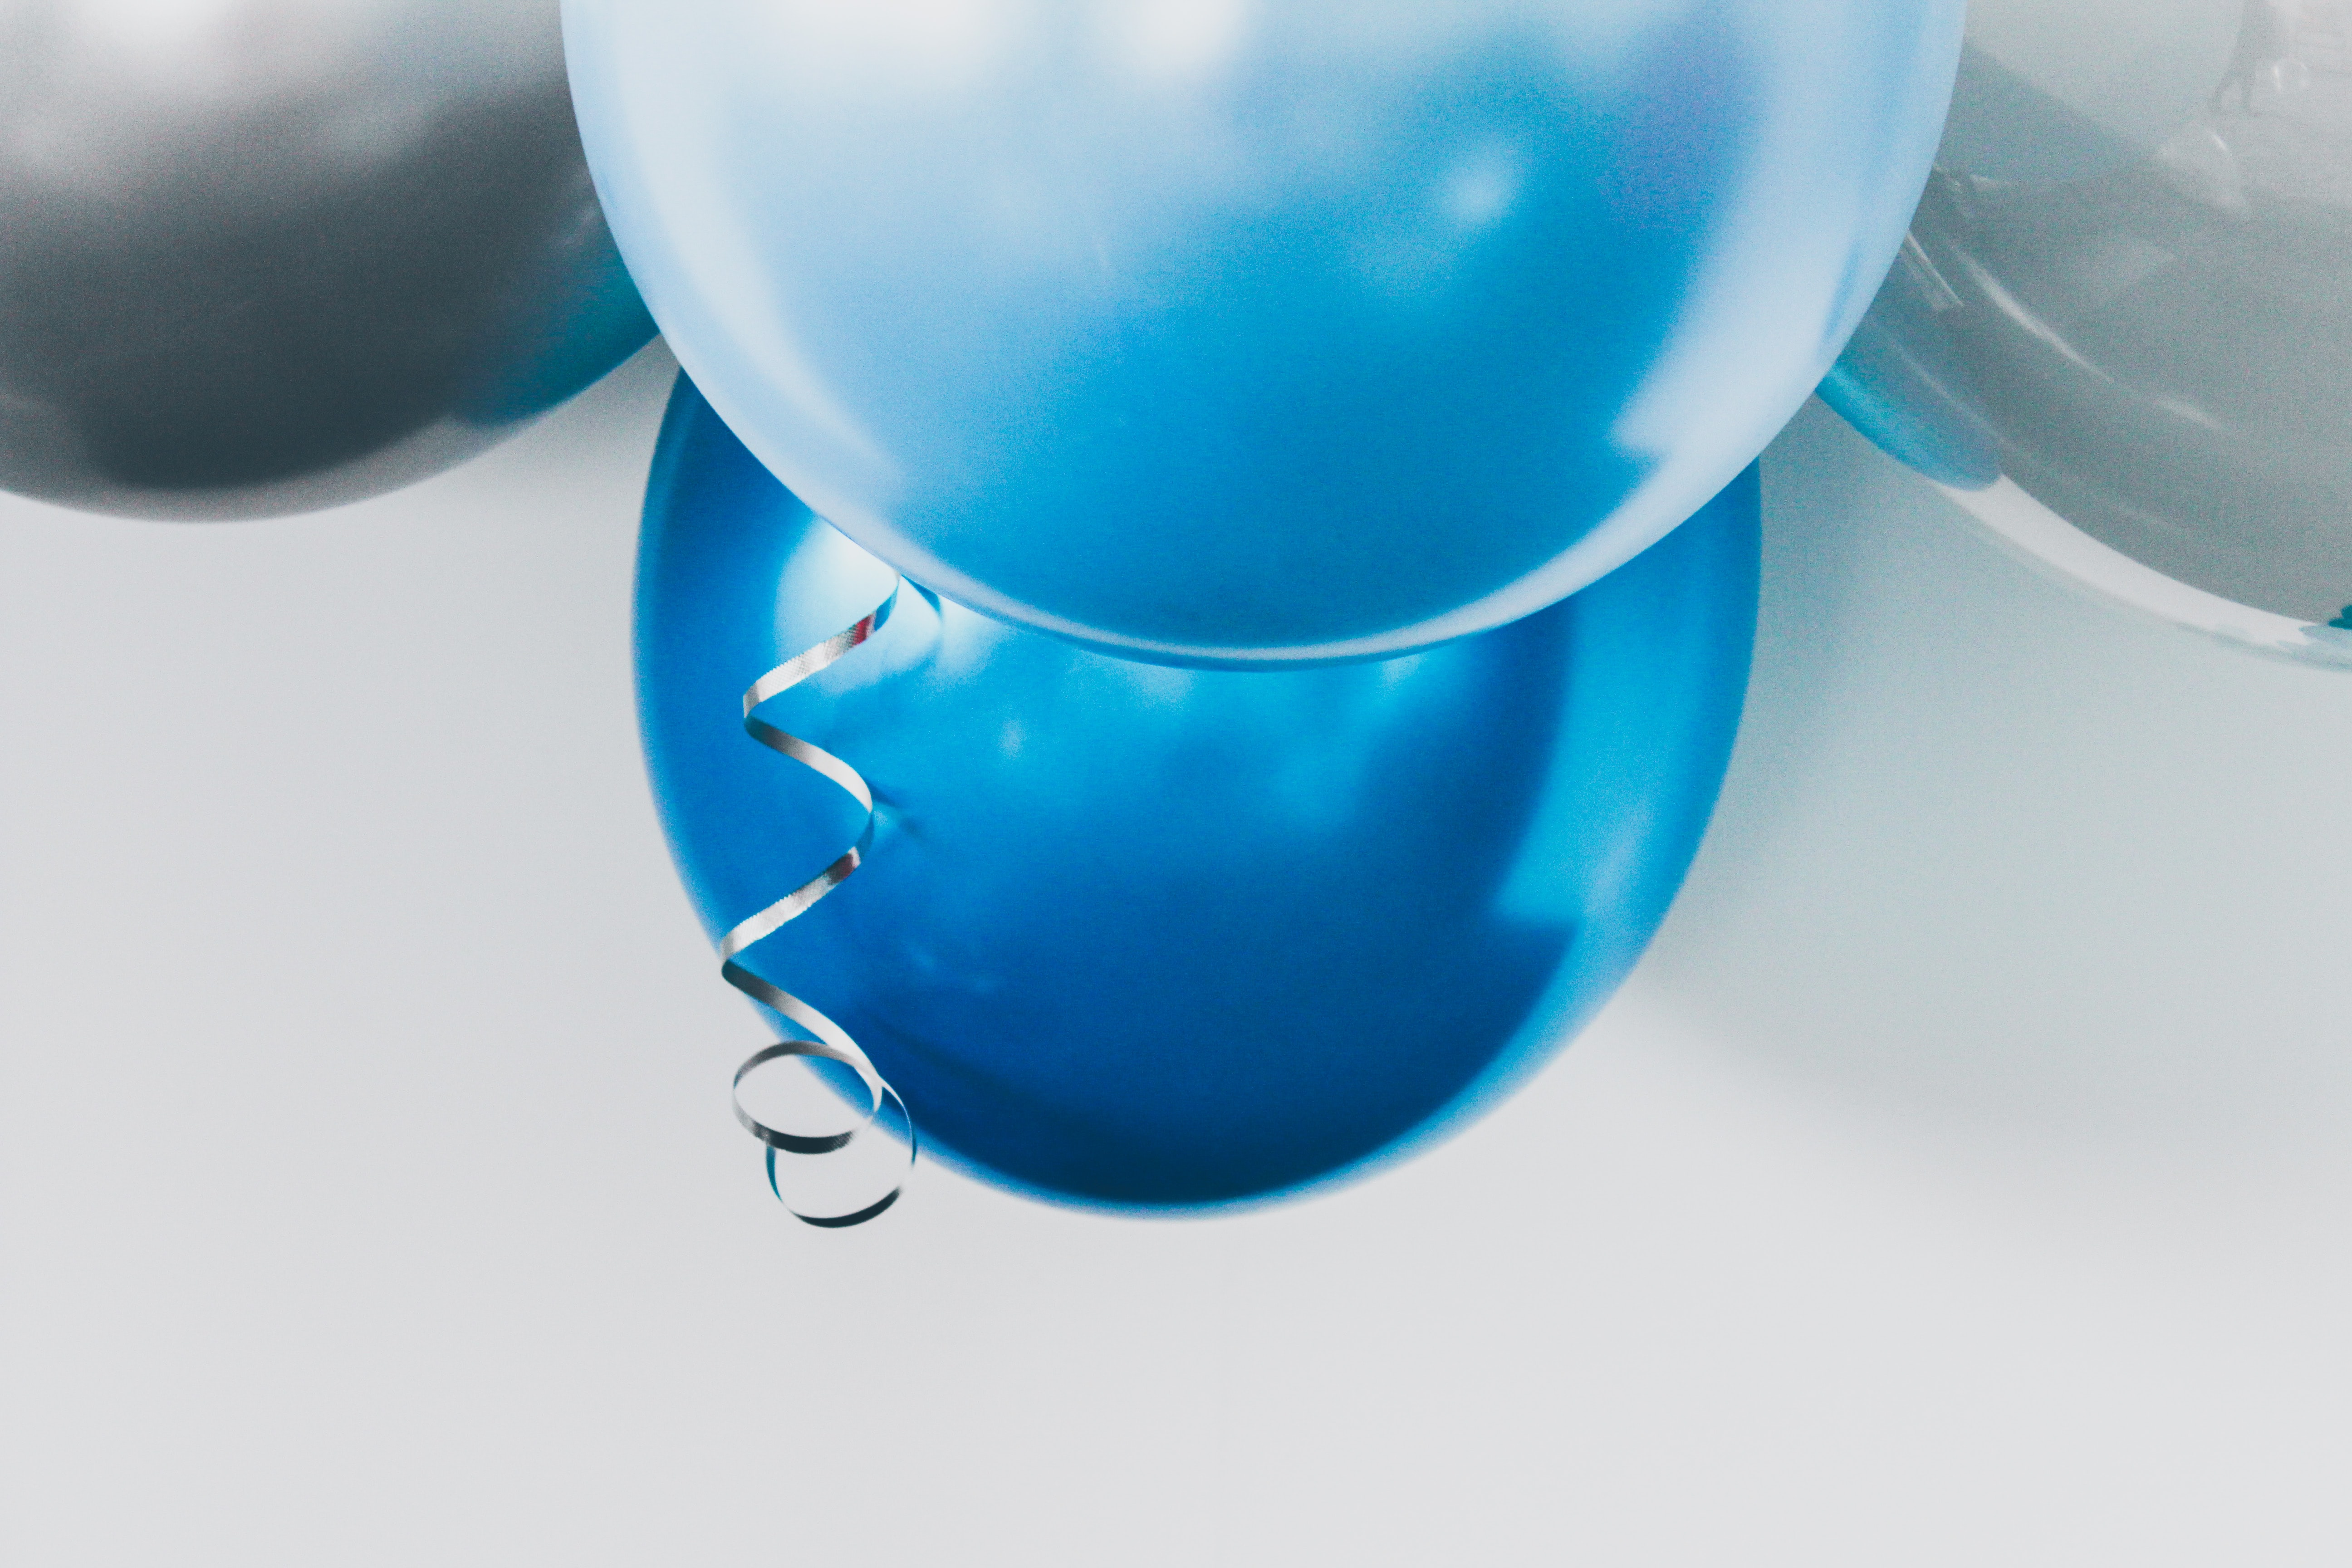 four gray, blue, and white balloons hanged on wall